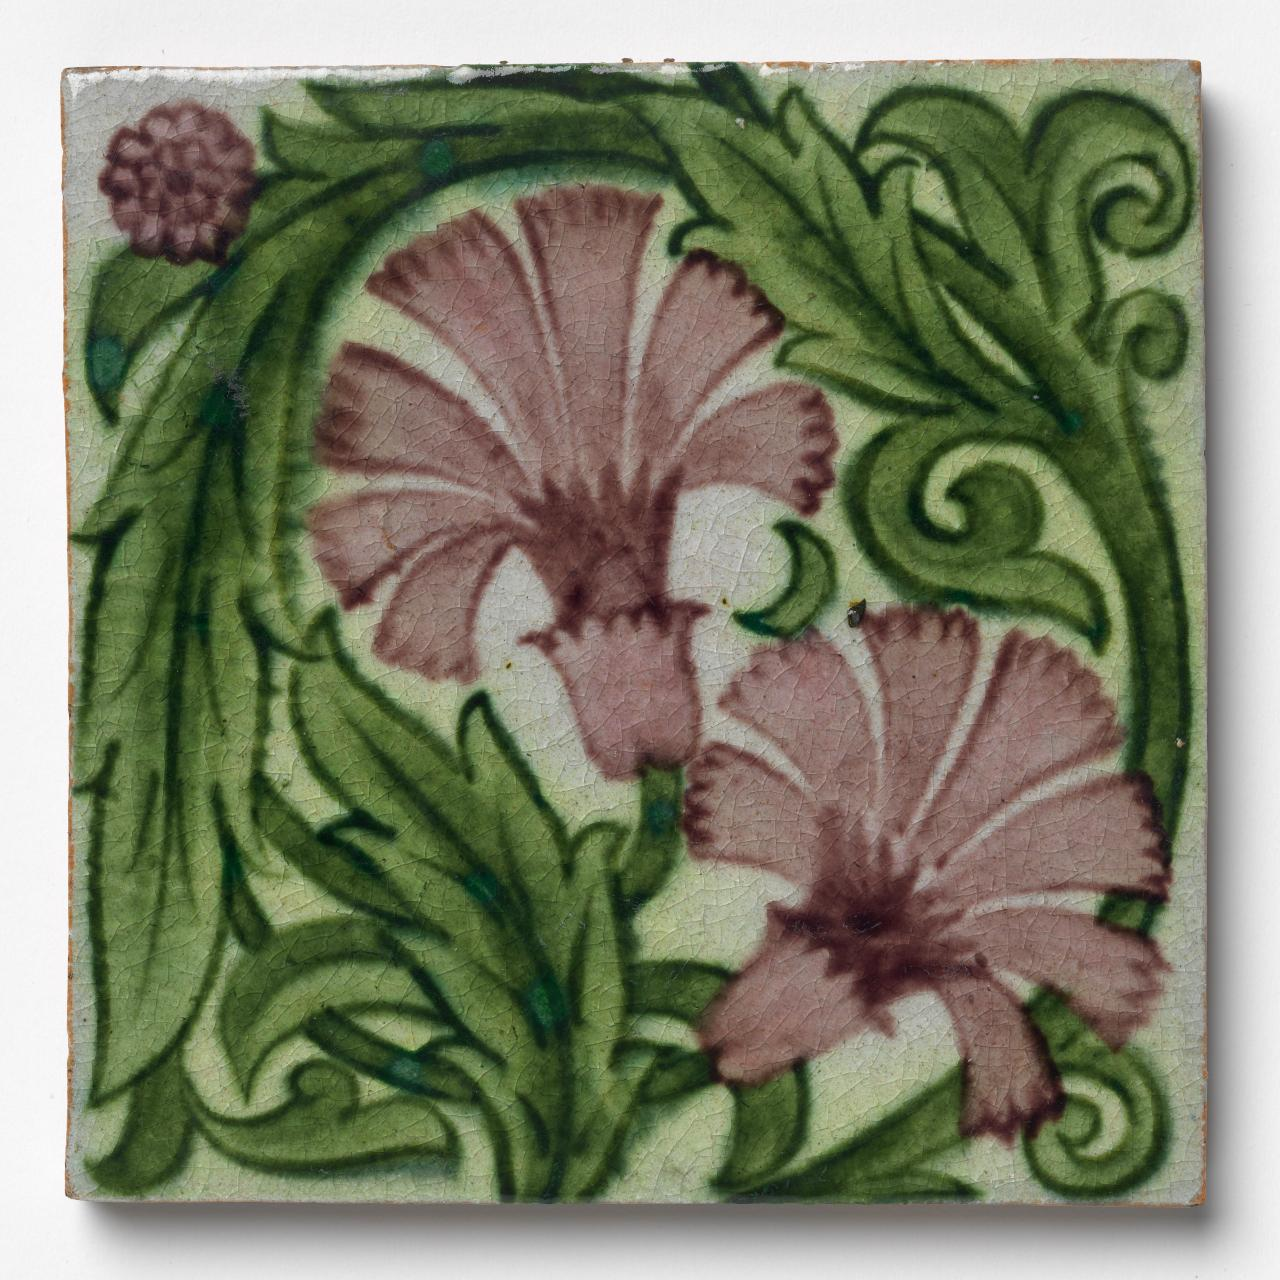 Small carnations and encircled foliage, tile